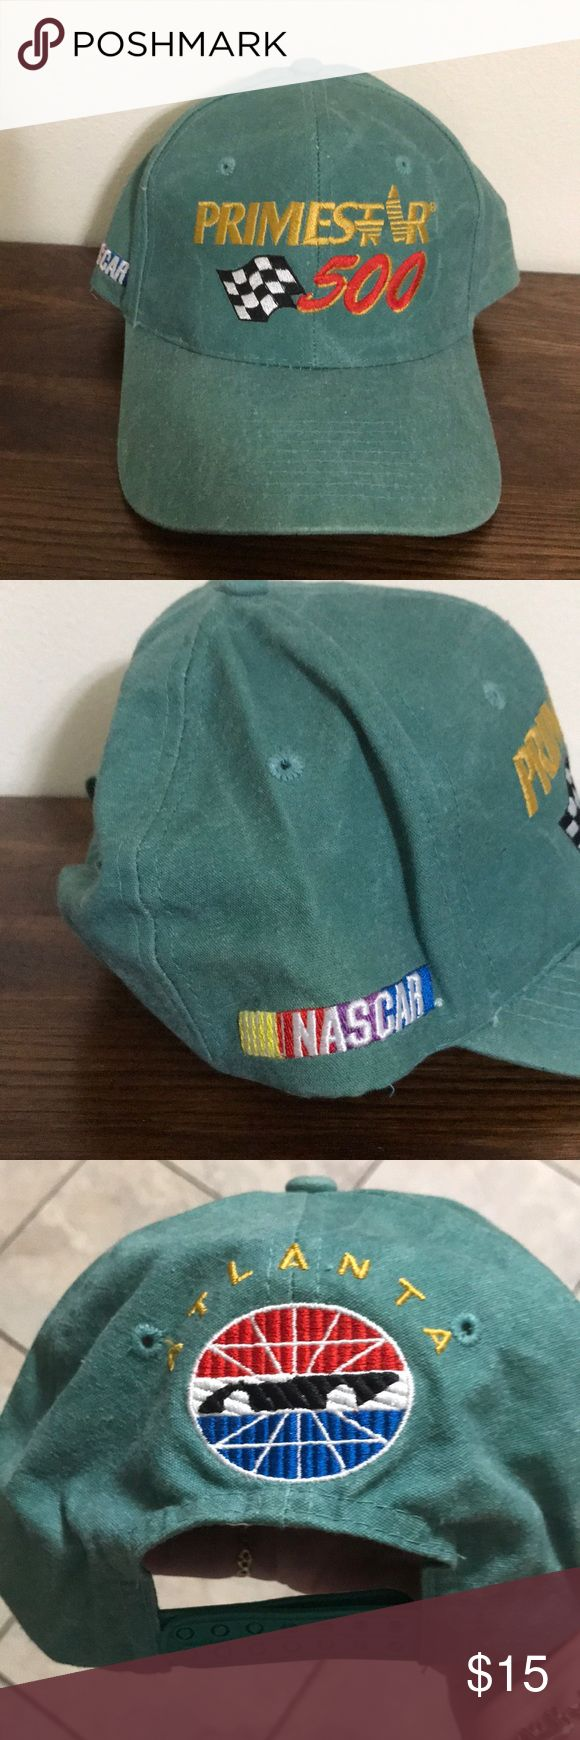 PRIMESTAR 500 ATLANTA NASCAR HAT ONE SIZE Love the colors of this hat, never worn just displayed. My husband collected hats but never wore them. Time for them to go! COBRA CARS Accessories Hats